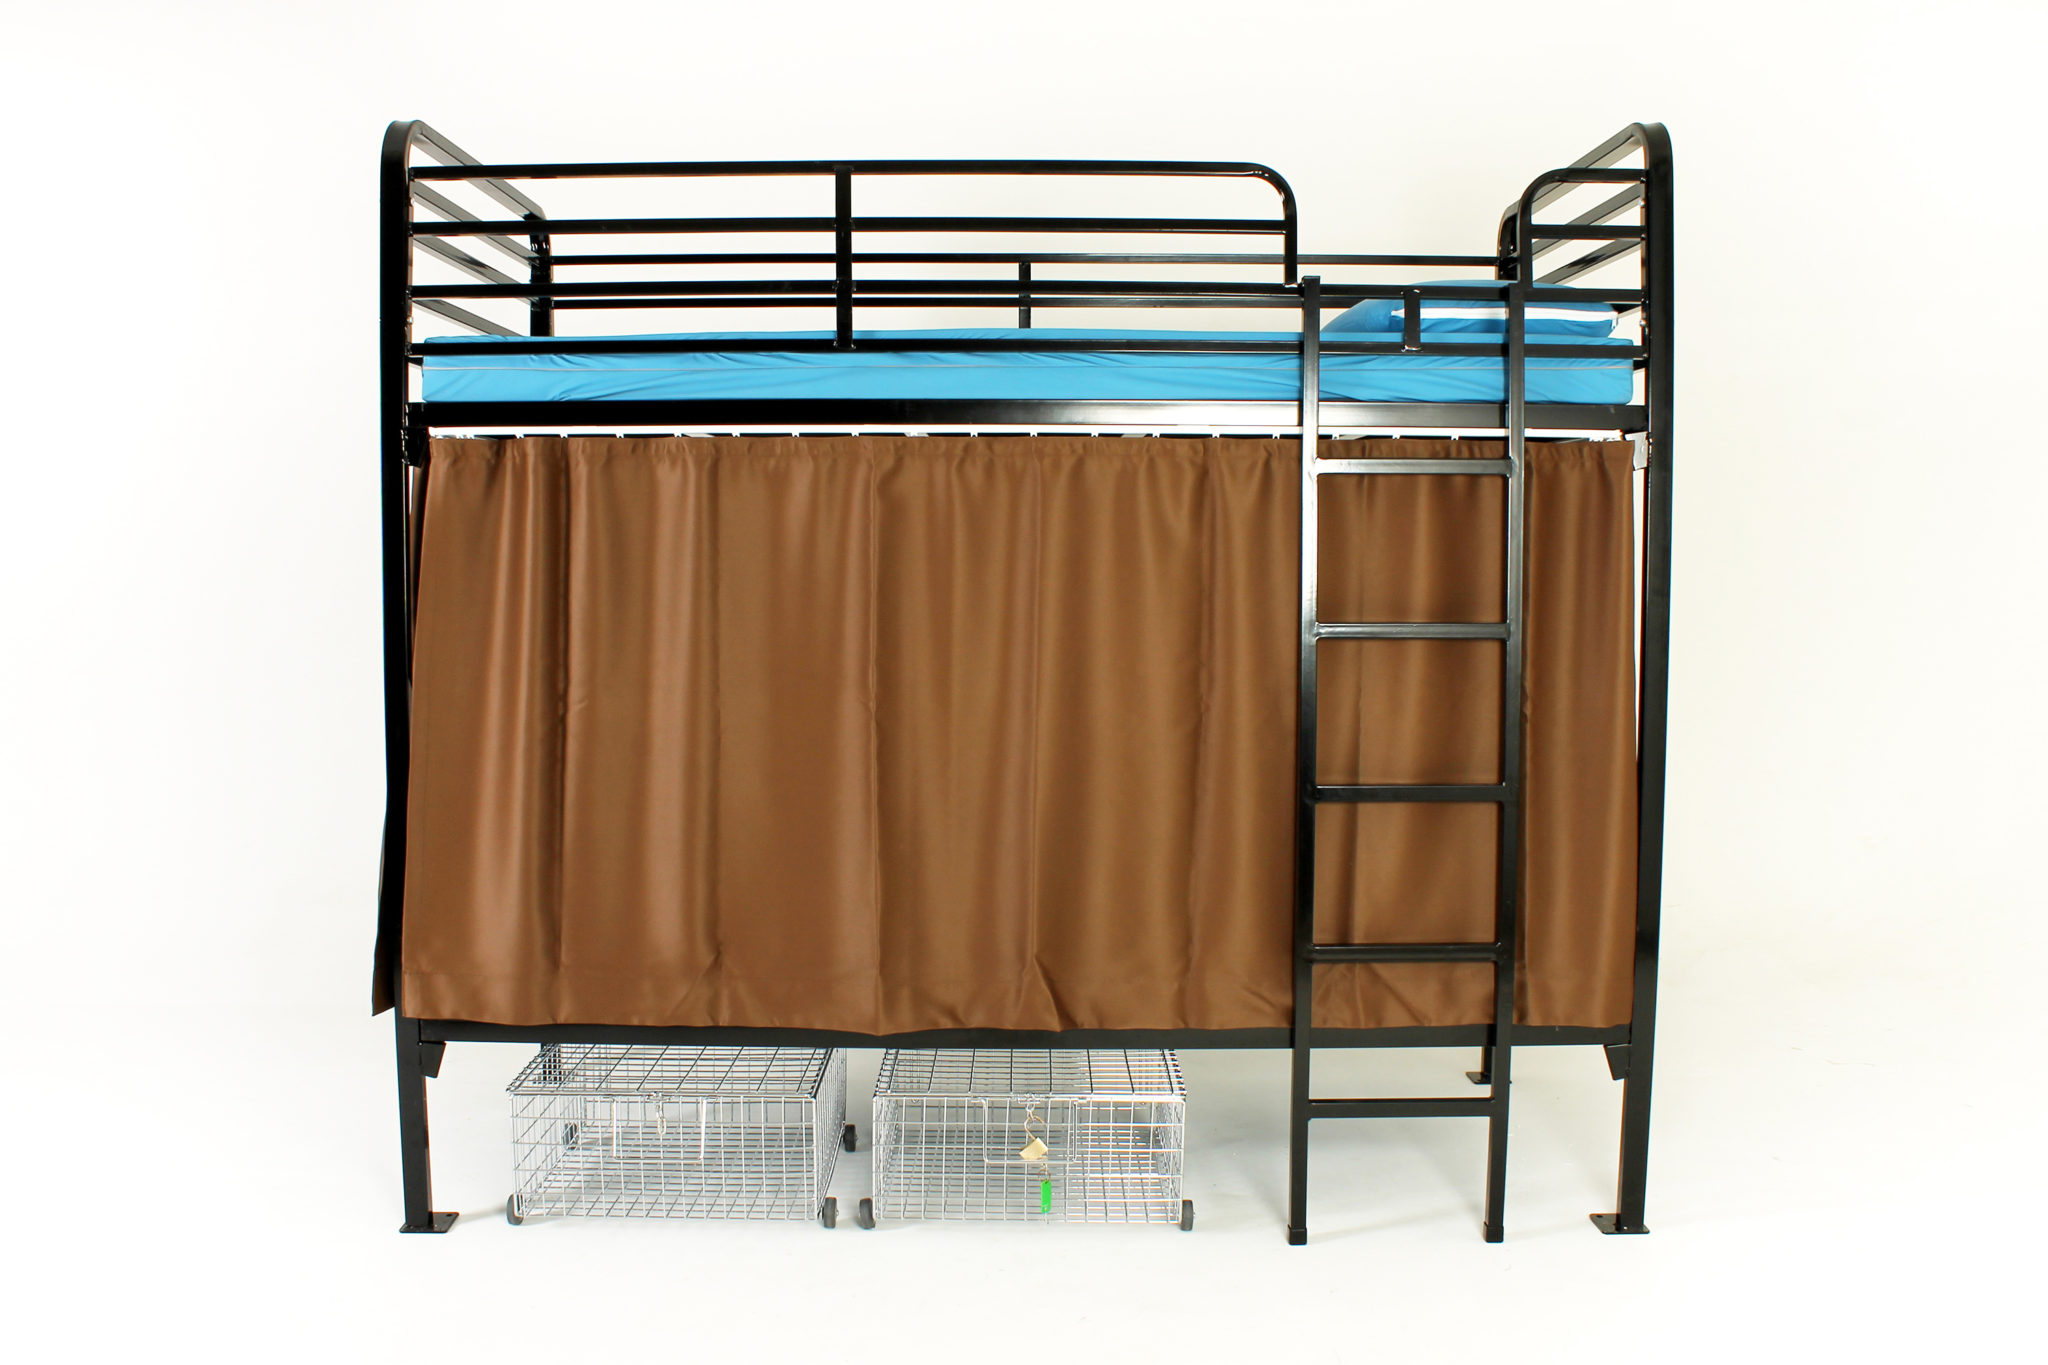 Contract bunk beds full set with privacy curtains and under bed storage lockers.